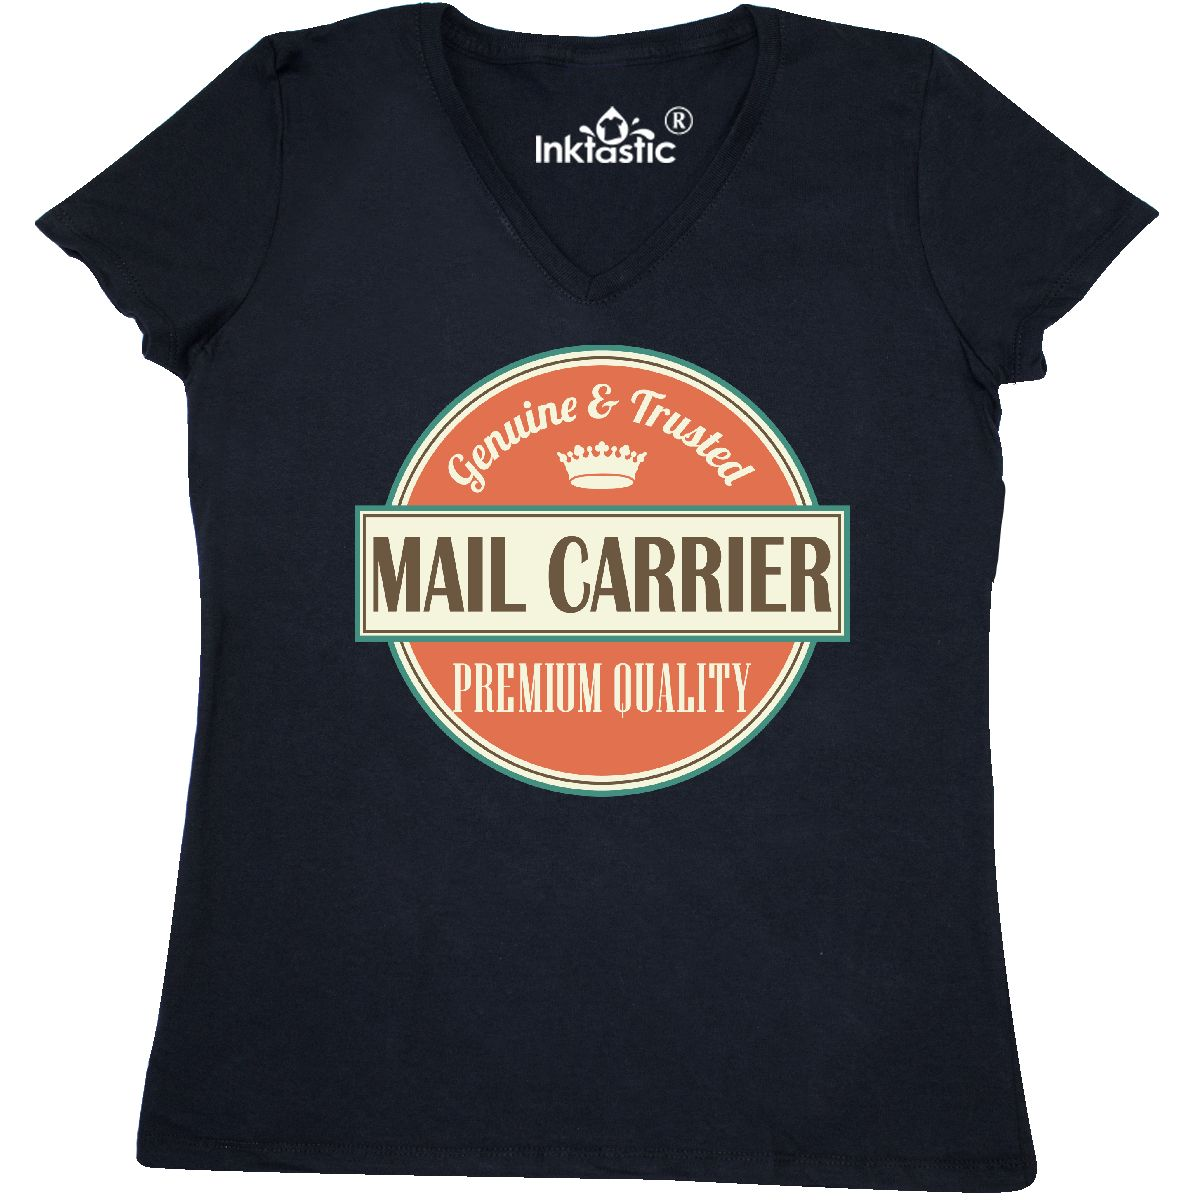 13526b645 Inktastic Mail Carrier Funny Gift Idea Women's V-Neck T-Shirt ...